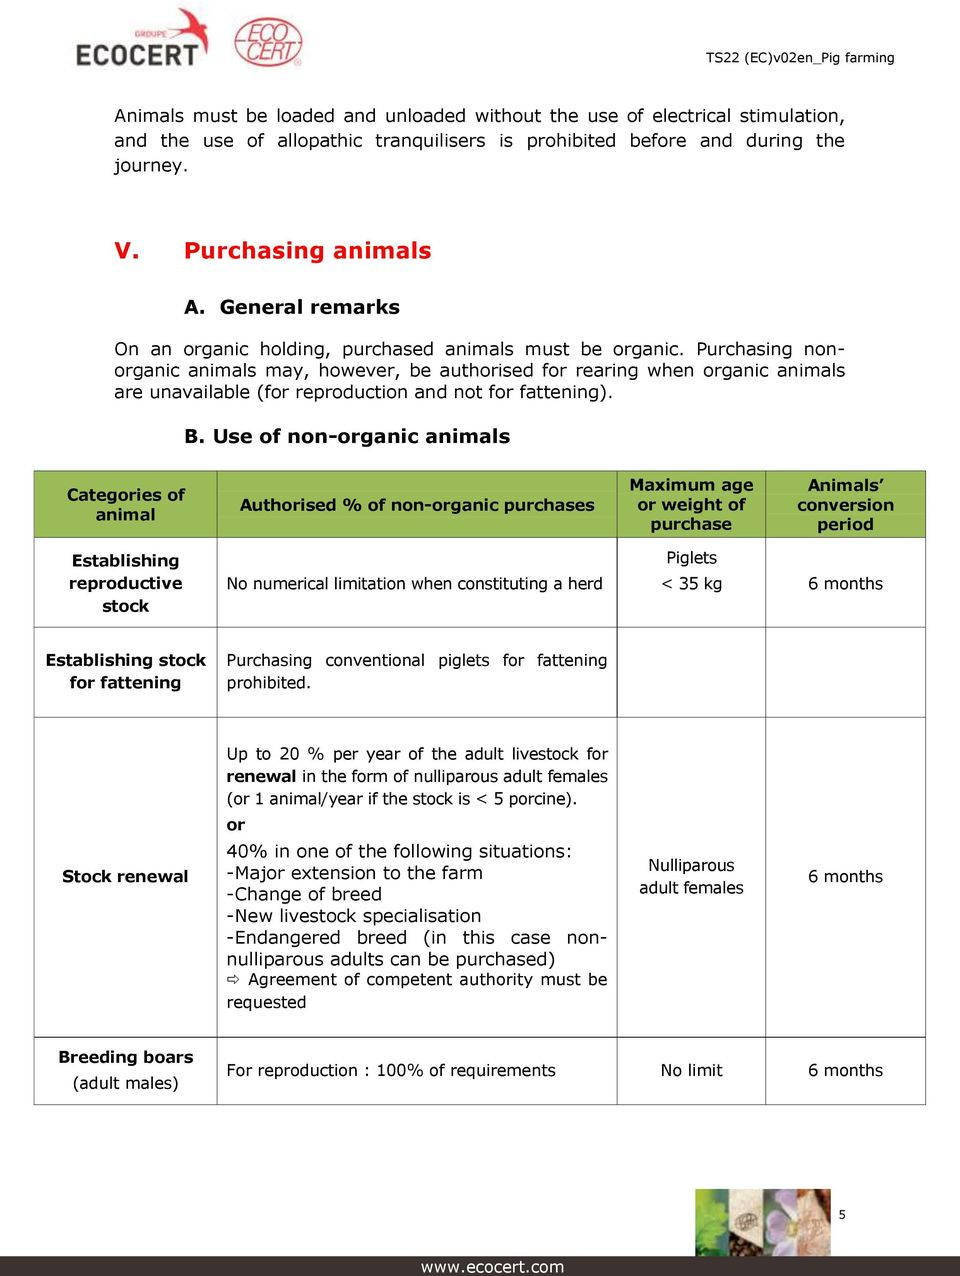 Purchasing nonorganic animals may, however, be authorised for rearing when organic animals are unavailable (for reproduction and not for fattening). B.